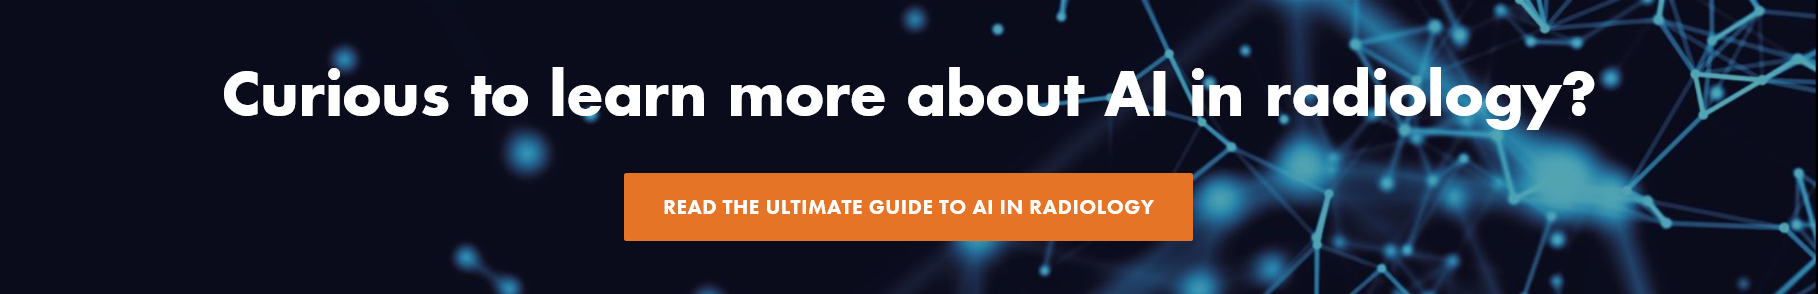 The ultimate guide to AI in radiology - Quantib